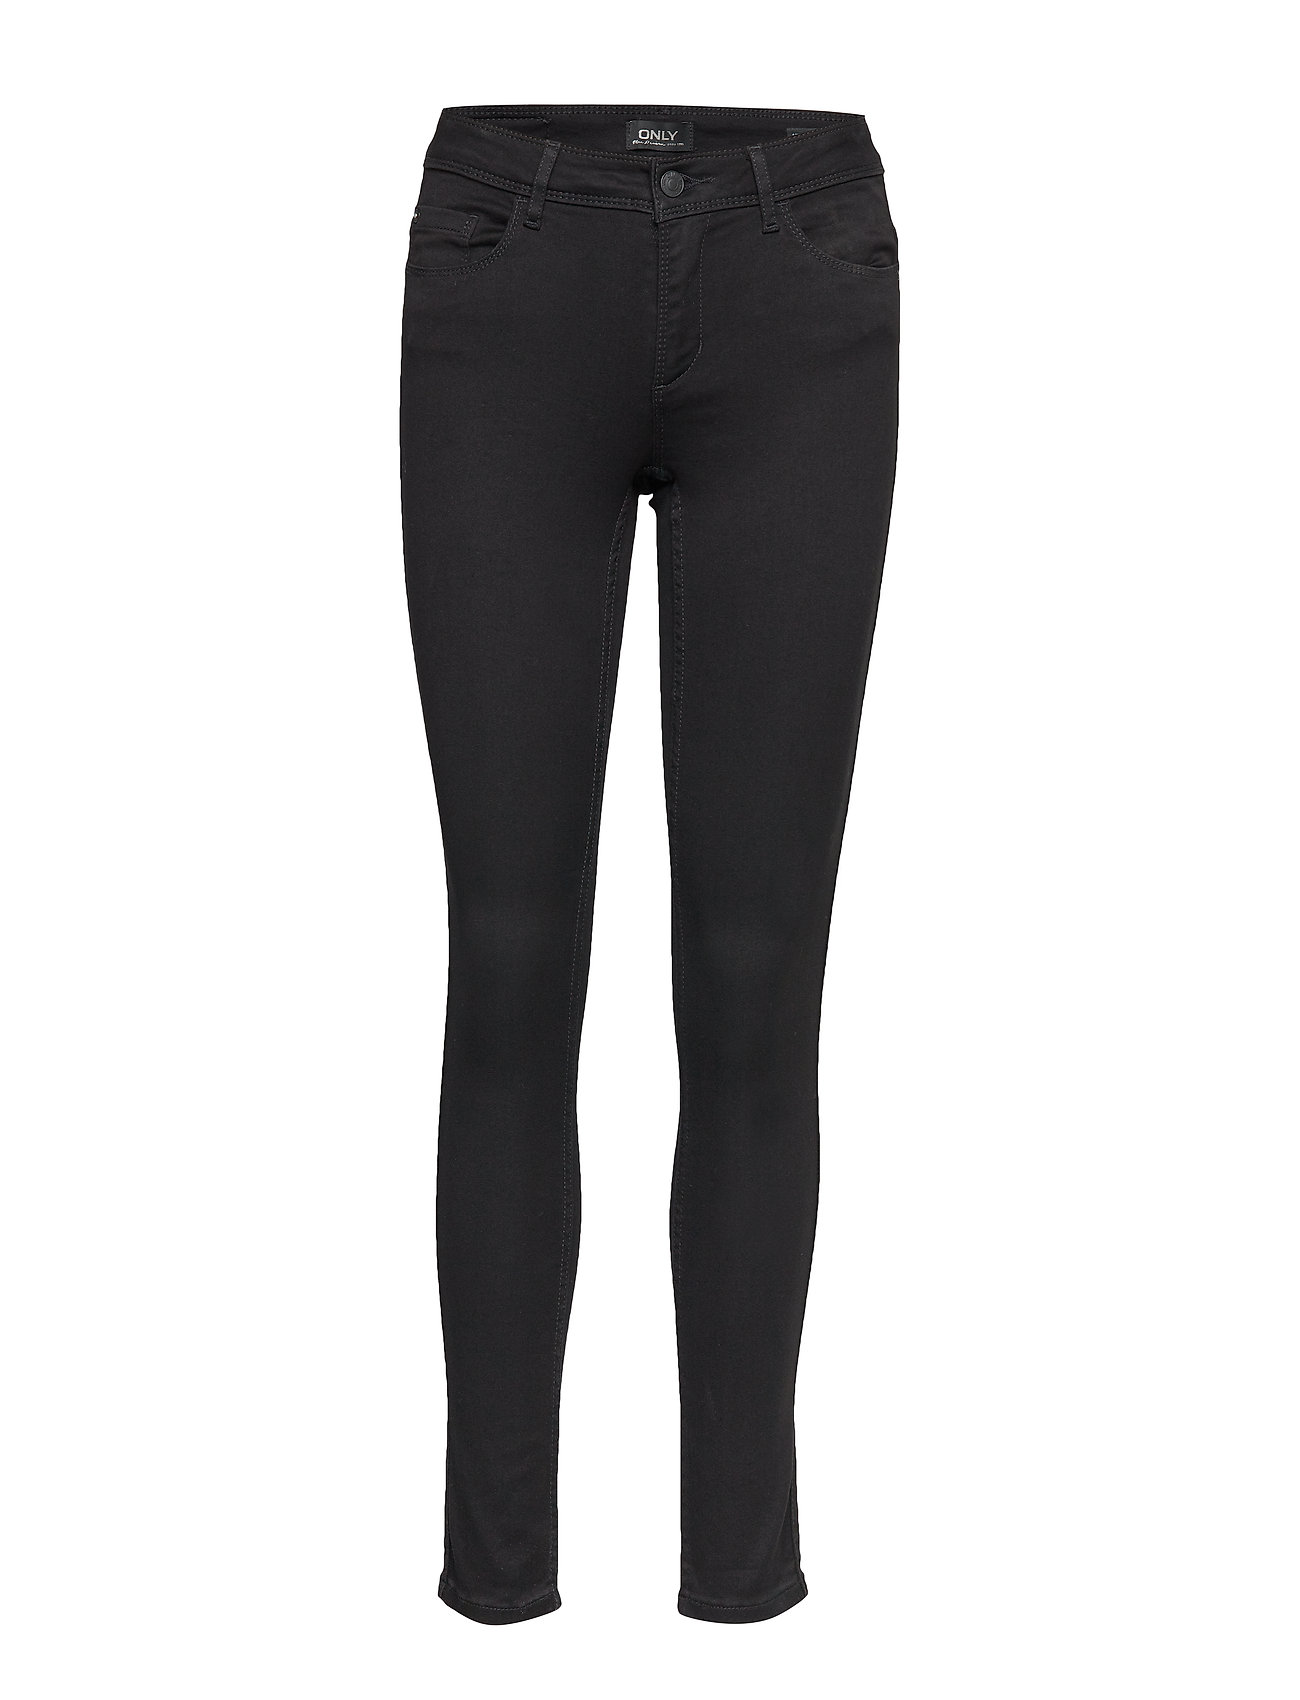 ONLY onlULTIMATE KING REG JEANS CRY100 NOOS - BLACK DENIM